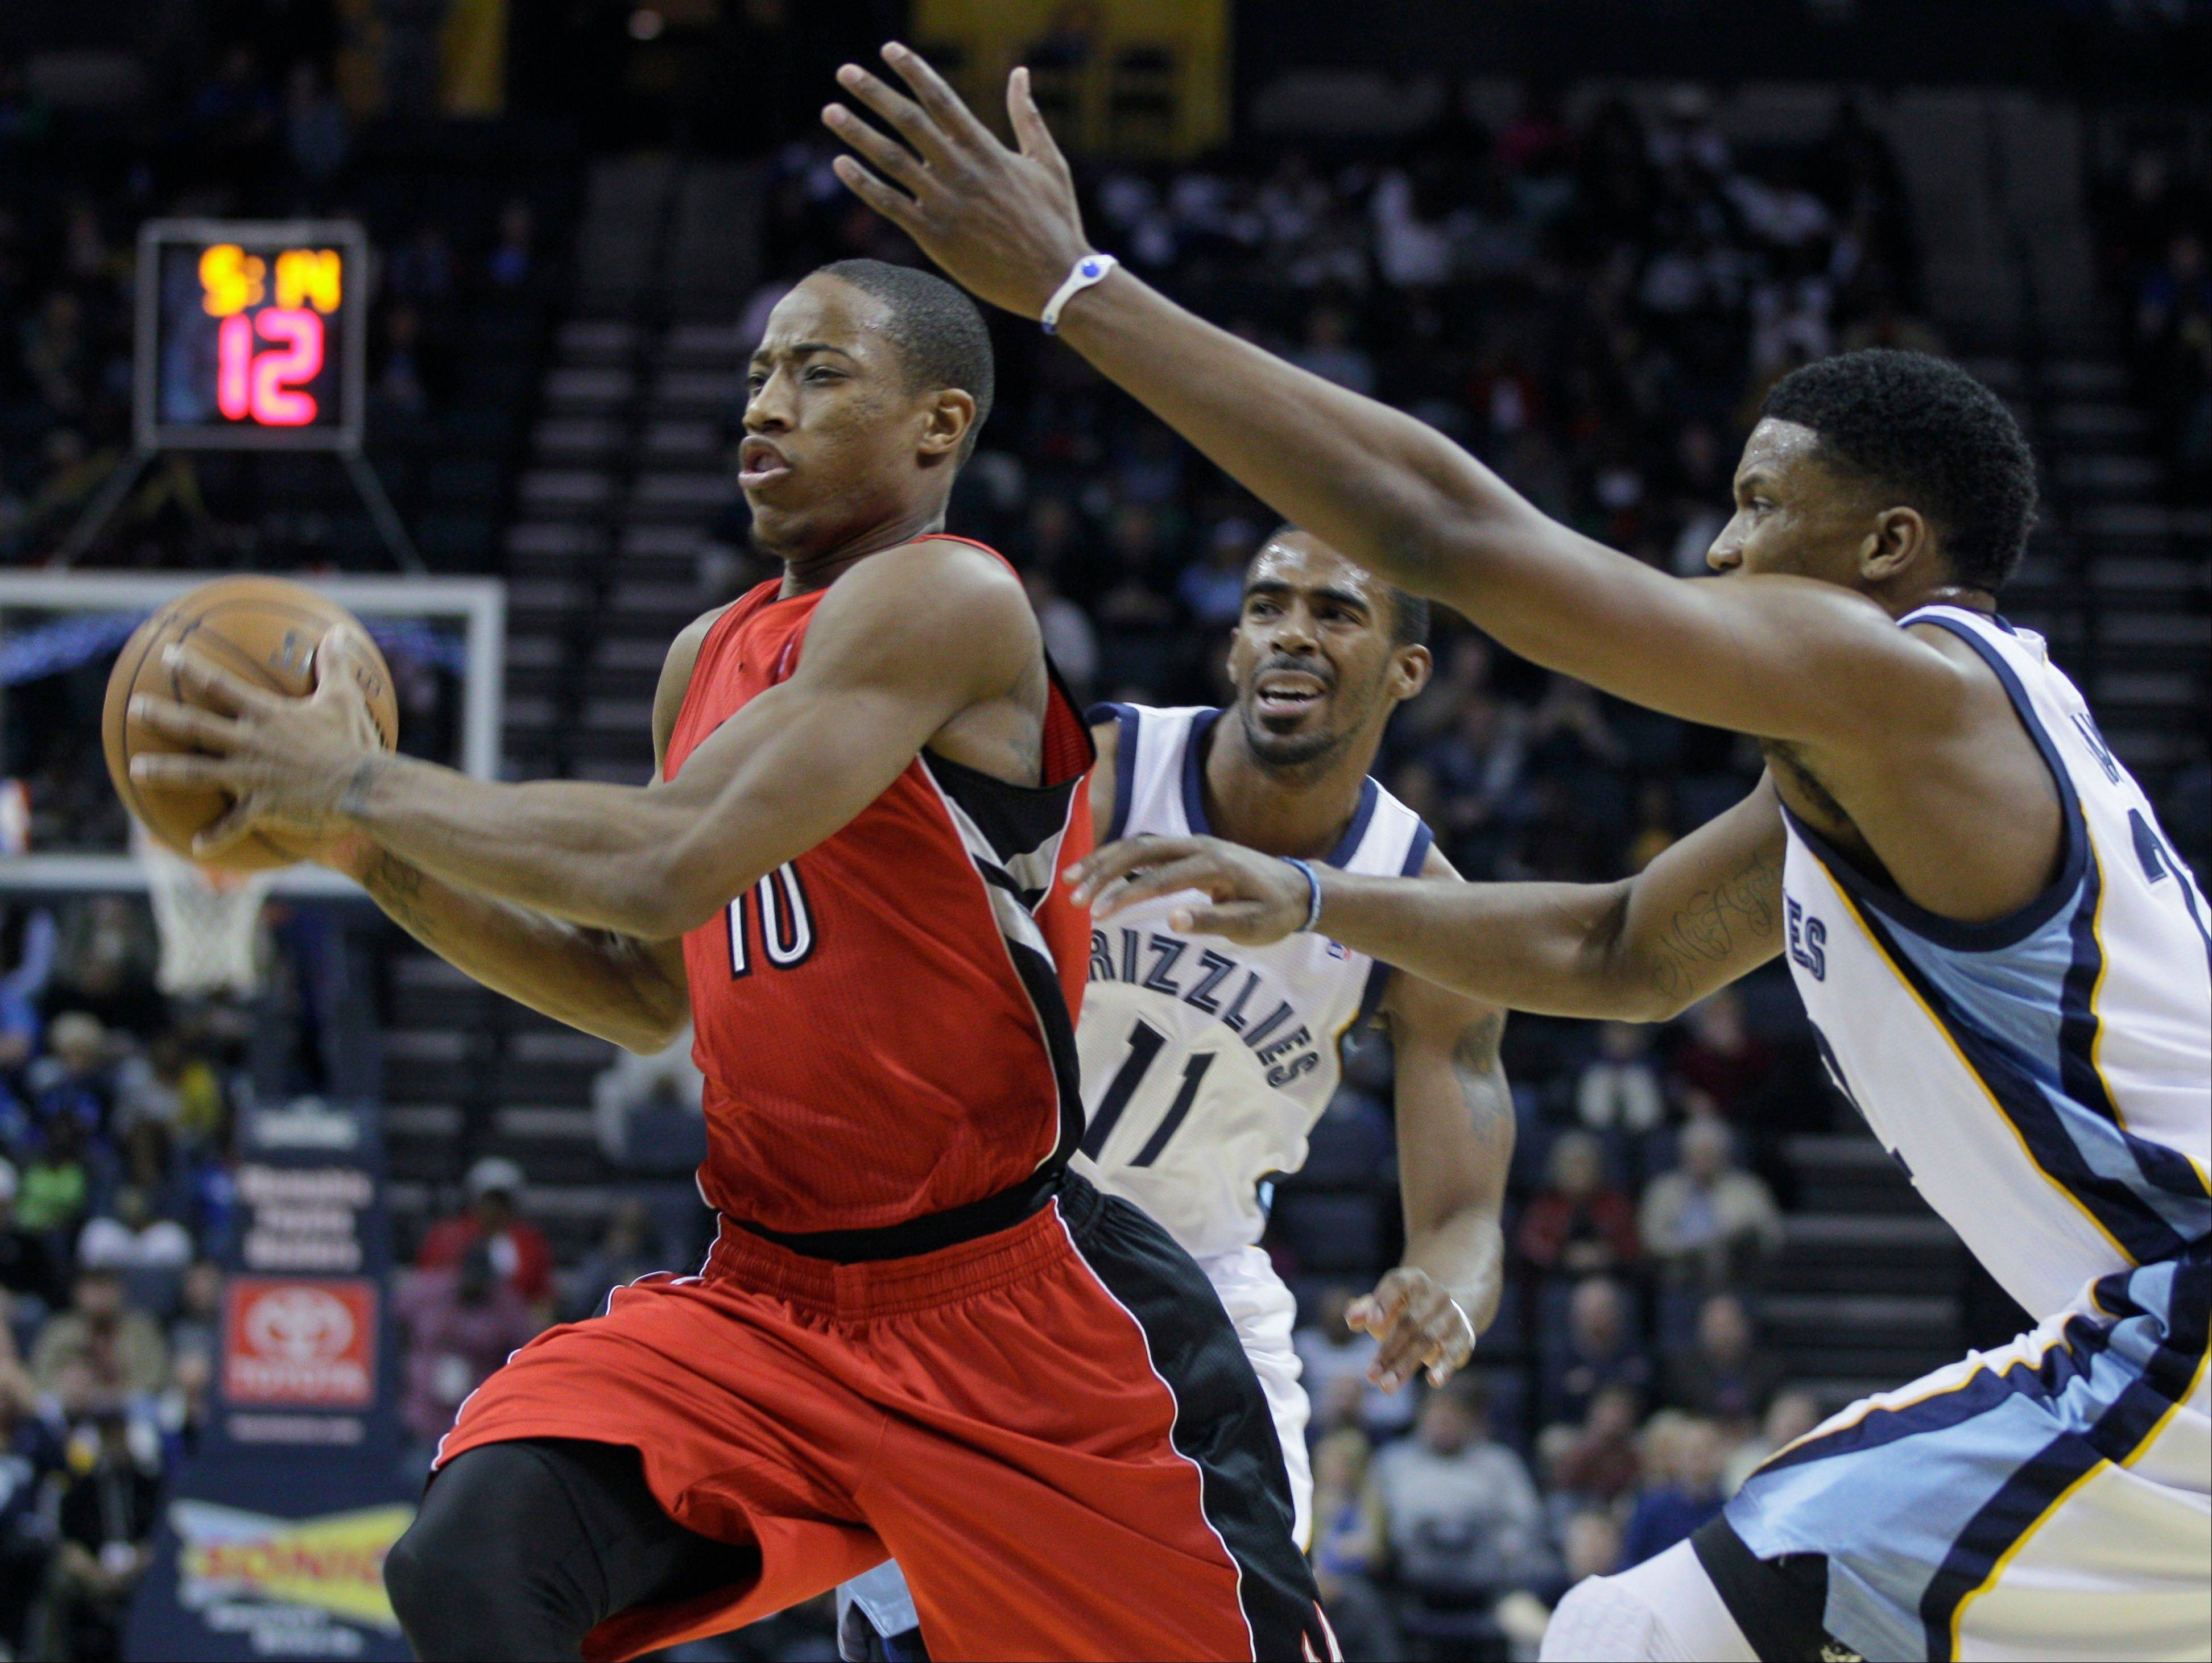 The Toronto Raptors� DeMar DeRozan (10) eludes the Memphis Grizzlies� Mike Conley (11) and Rudy Gay, right, Wednesday during the first half in Memphis, Tenn.